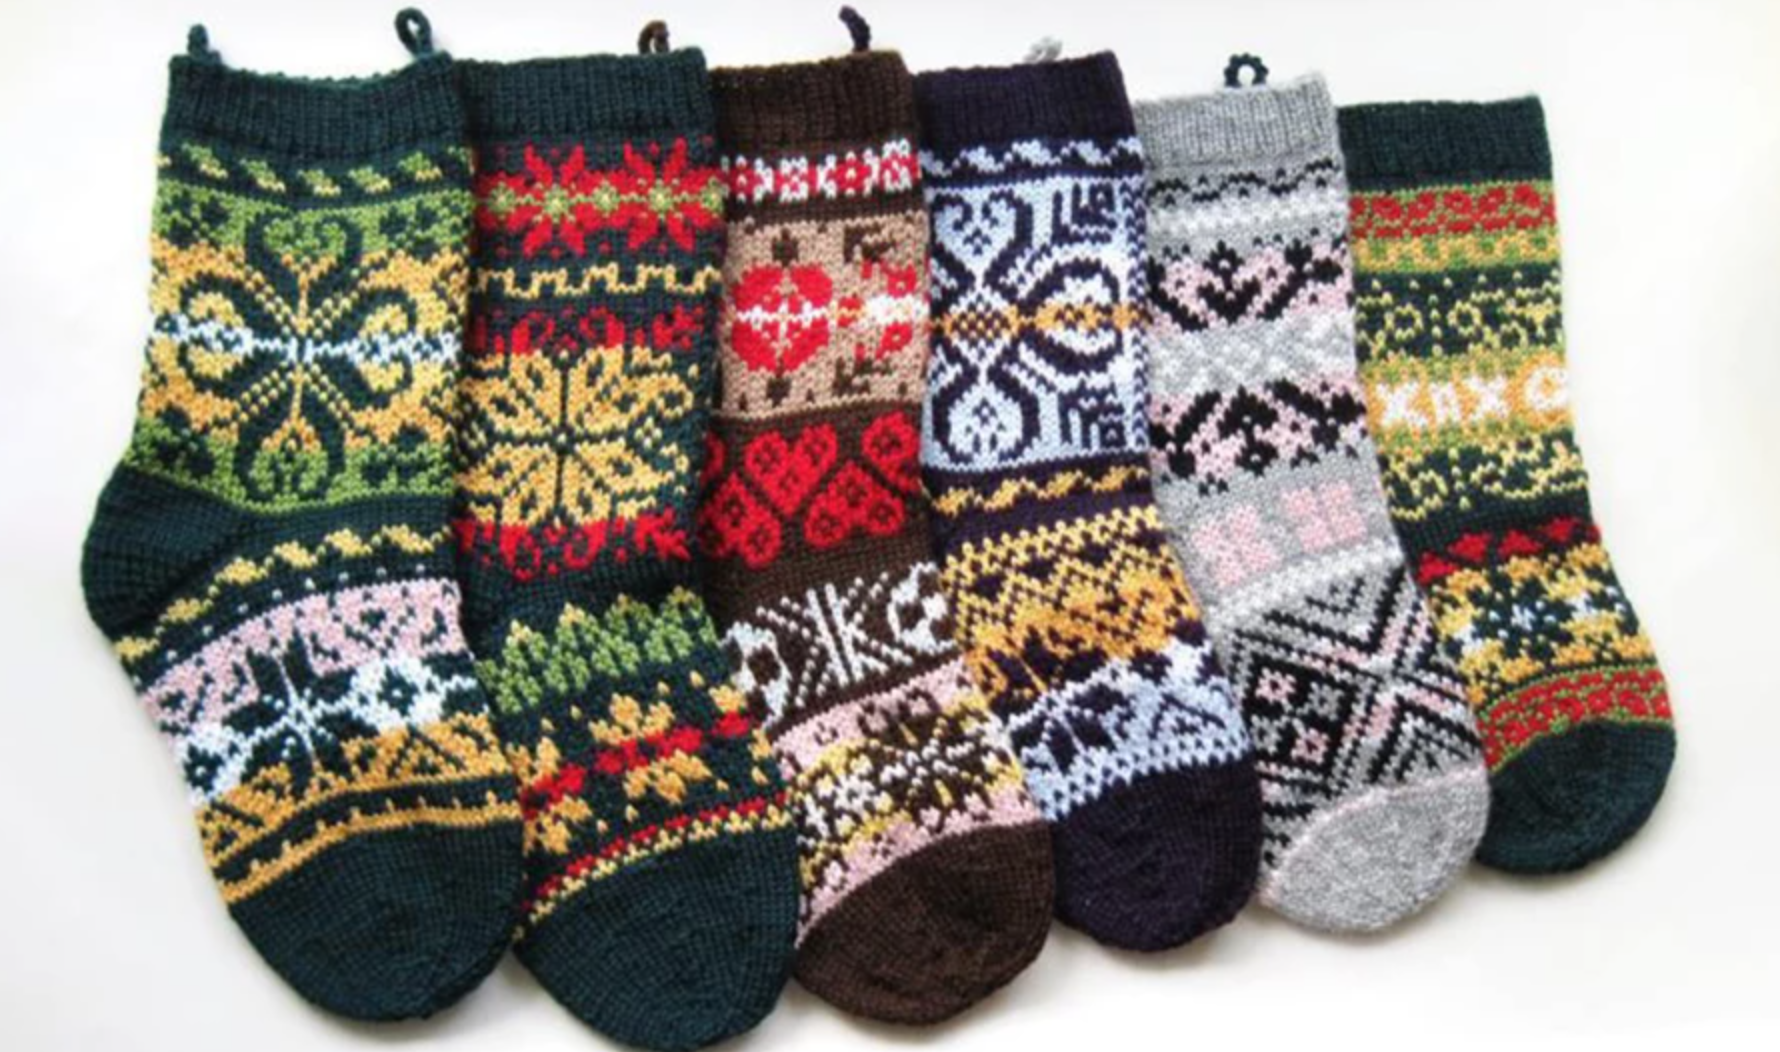 six knit stockings